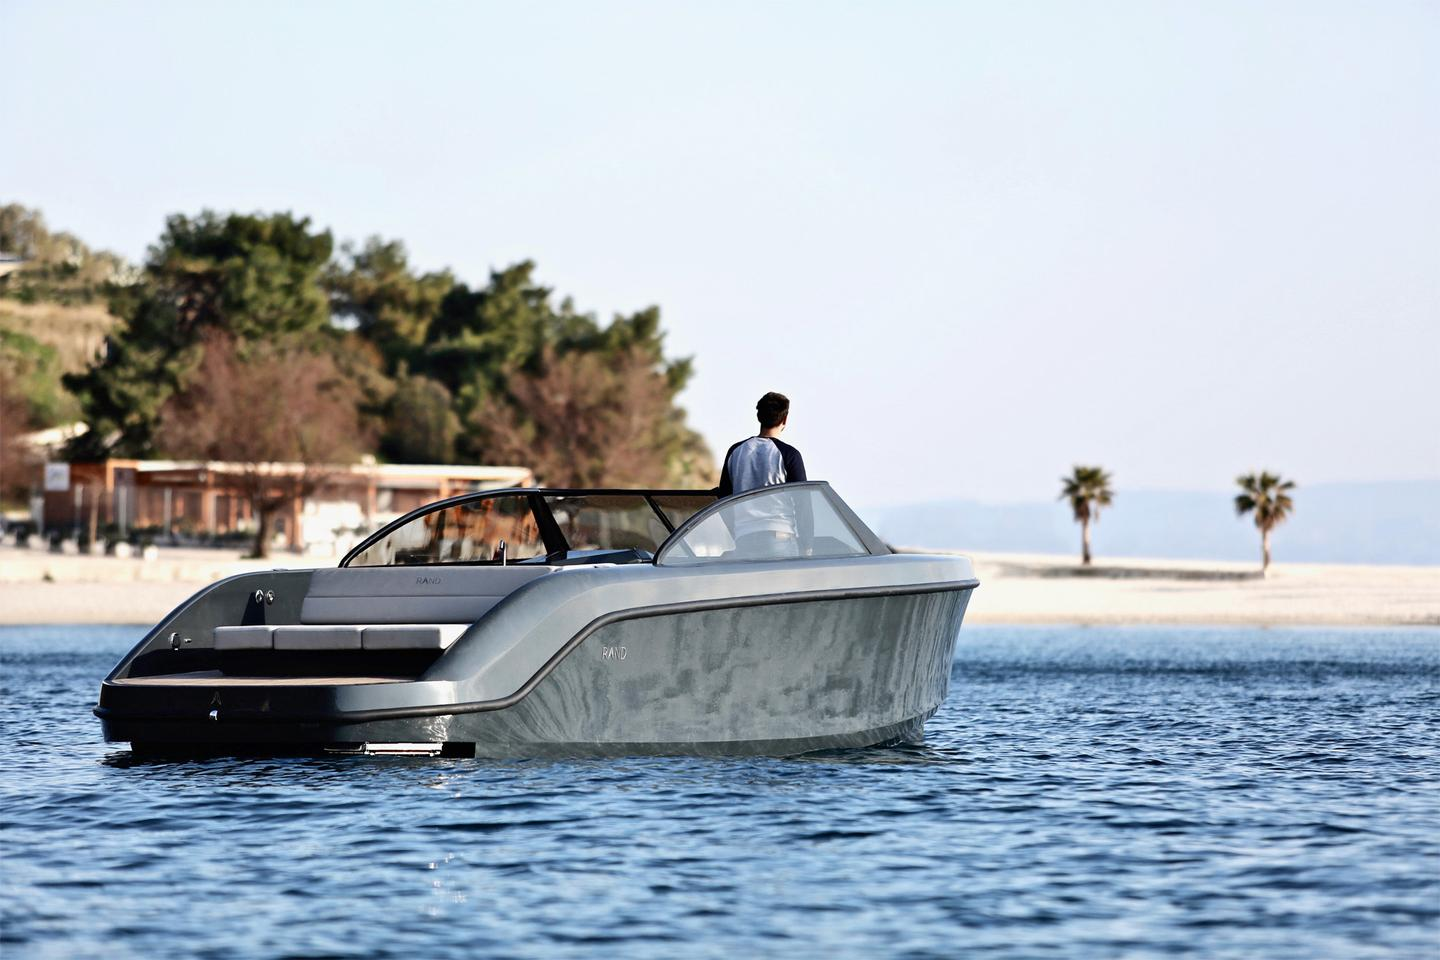 The Leisure 28 Electric has been constructed using recycled plastics and bio-based hybrid materials